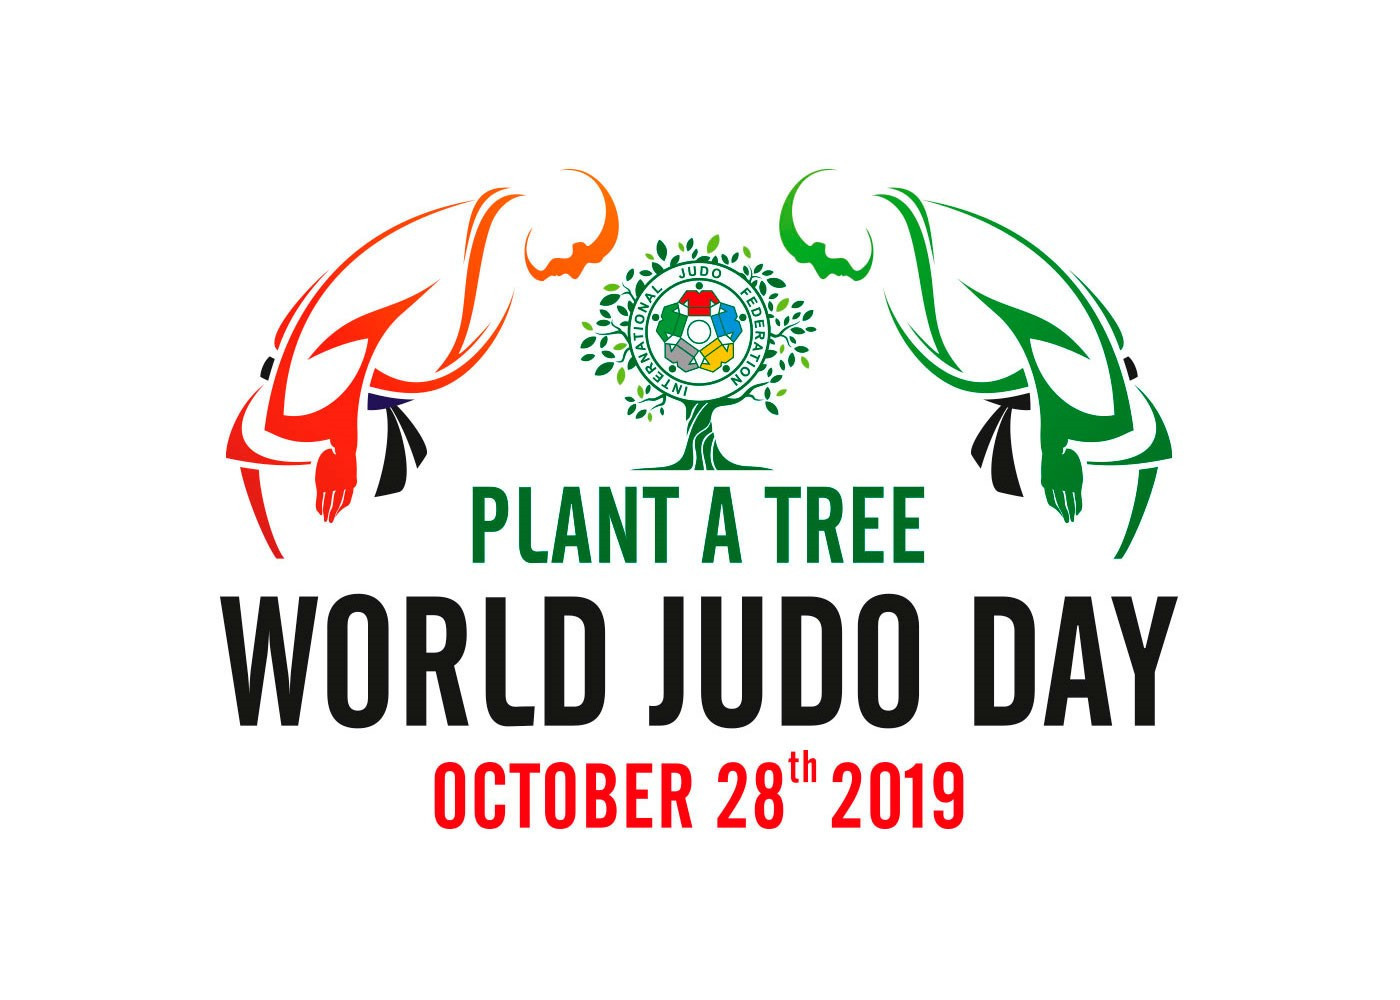 IJF encourage tree-planting to mark 2019 World Judo Day